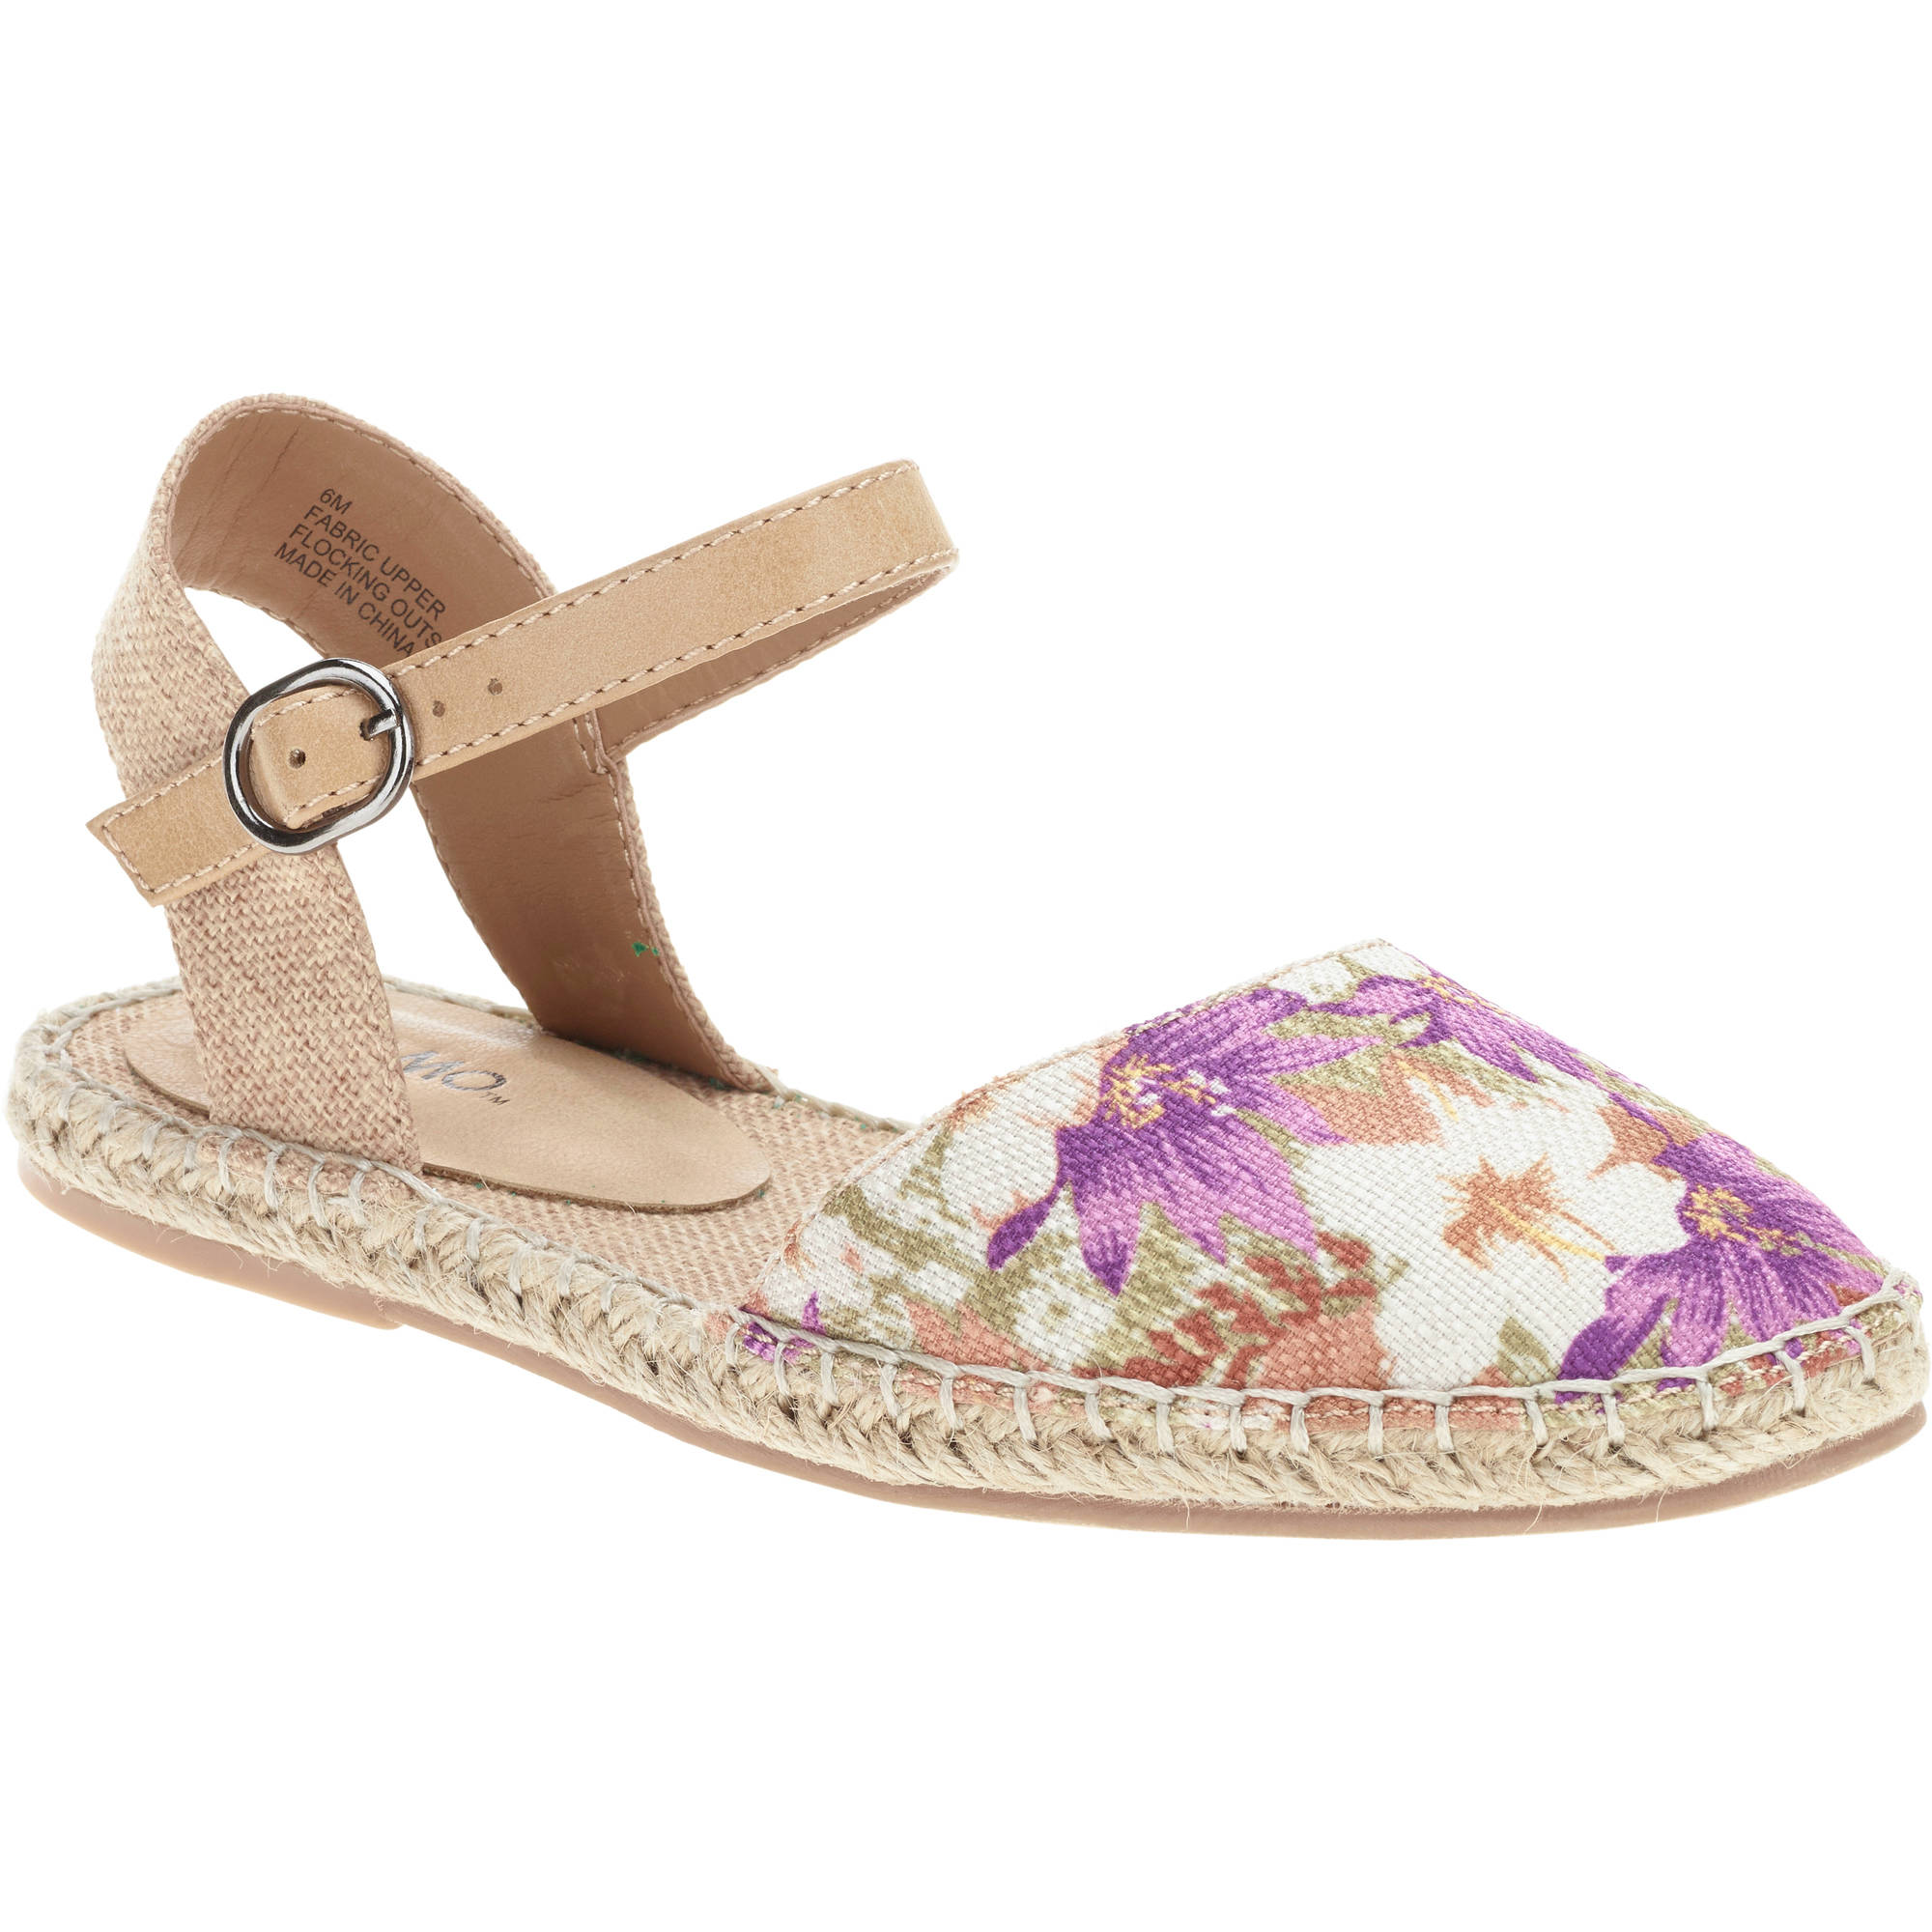 Women's Sunset Espadrille Flat